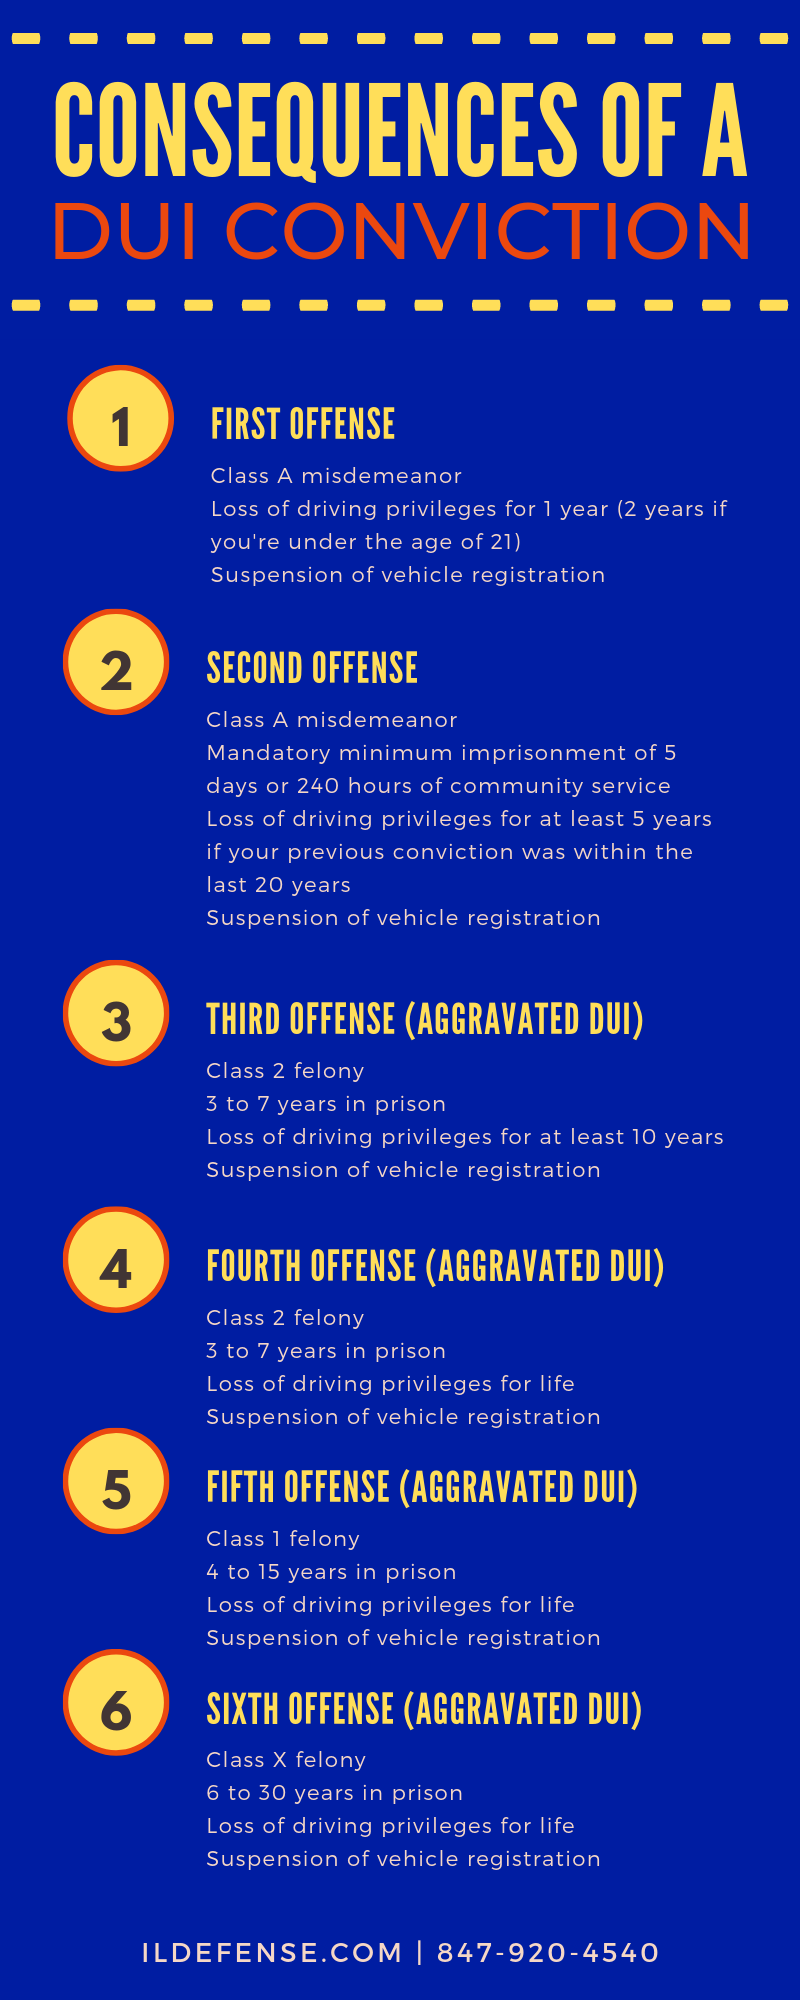 Consequences of a DUI Conviction in Illinois - What Happens After a DUI Arrest